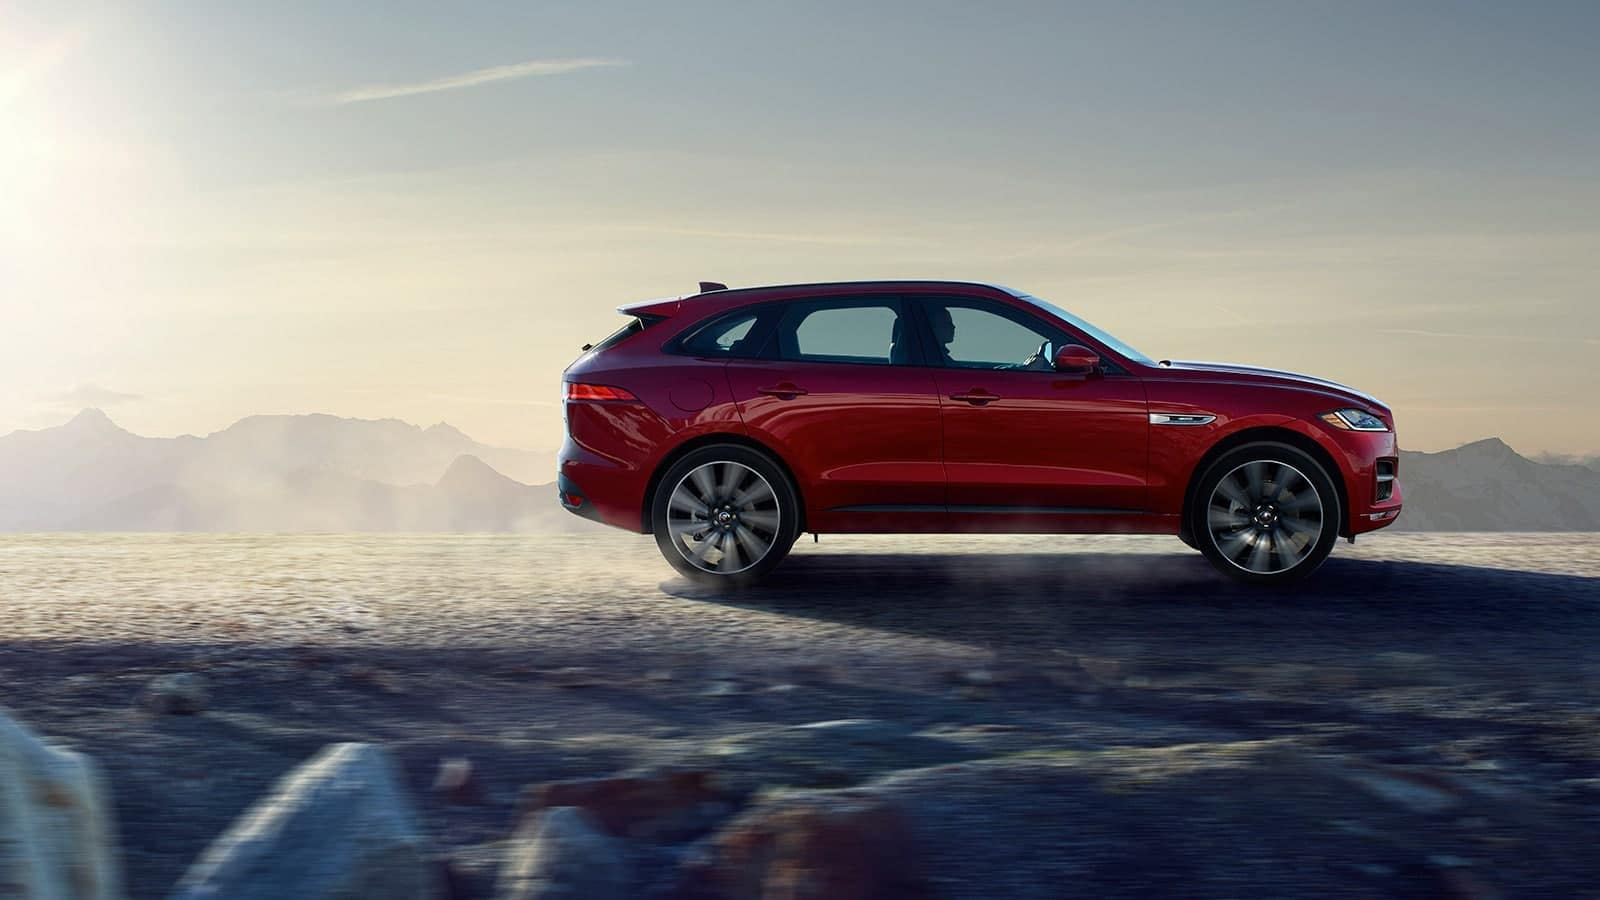 2019 Jaguar F-Pace in red driving down unpaved road